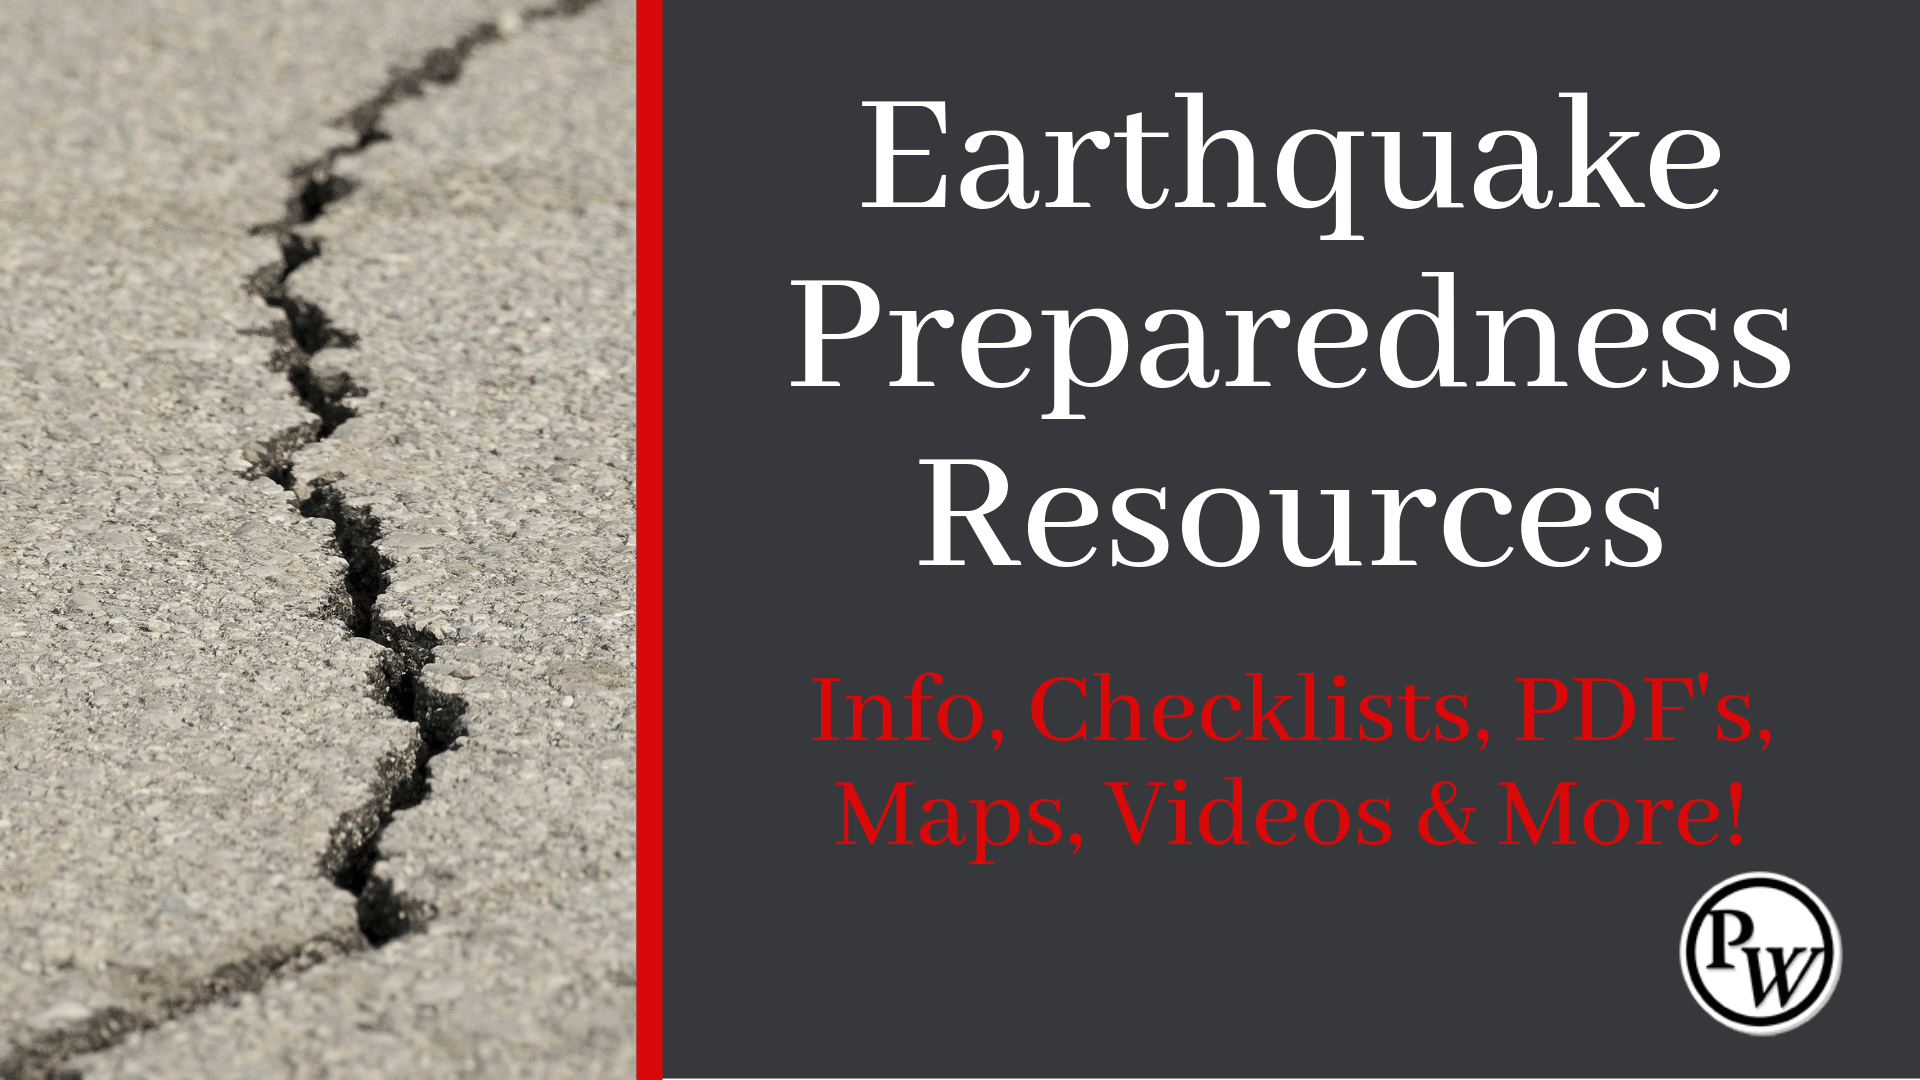 Prepper Resources for Earthquakes